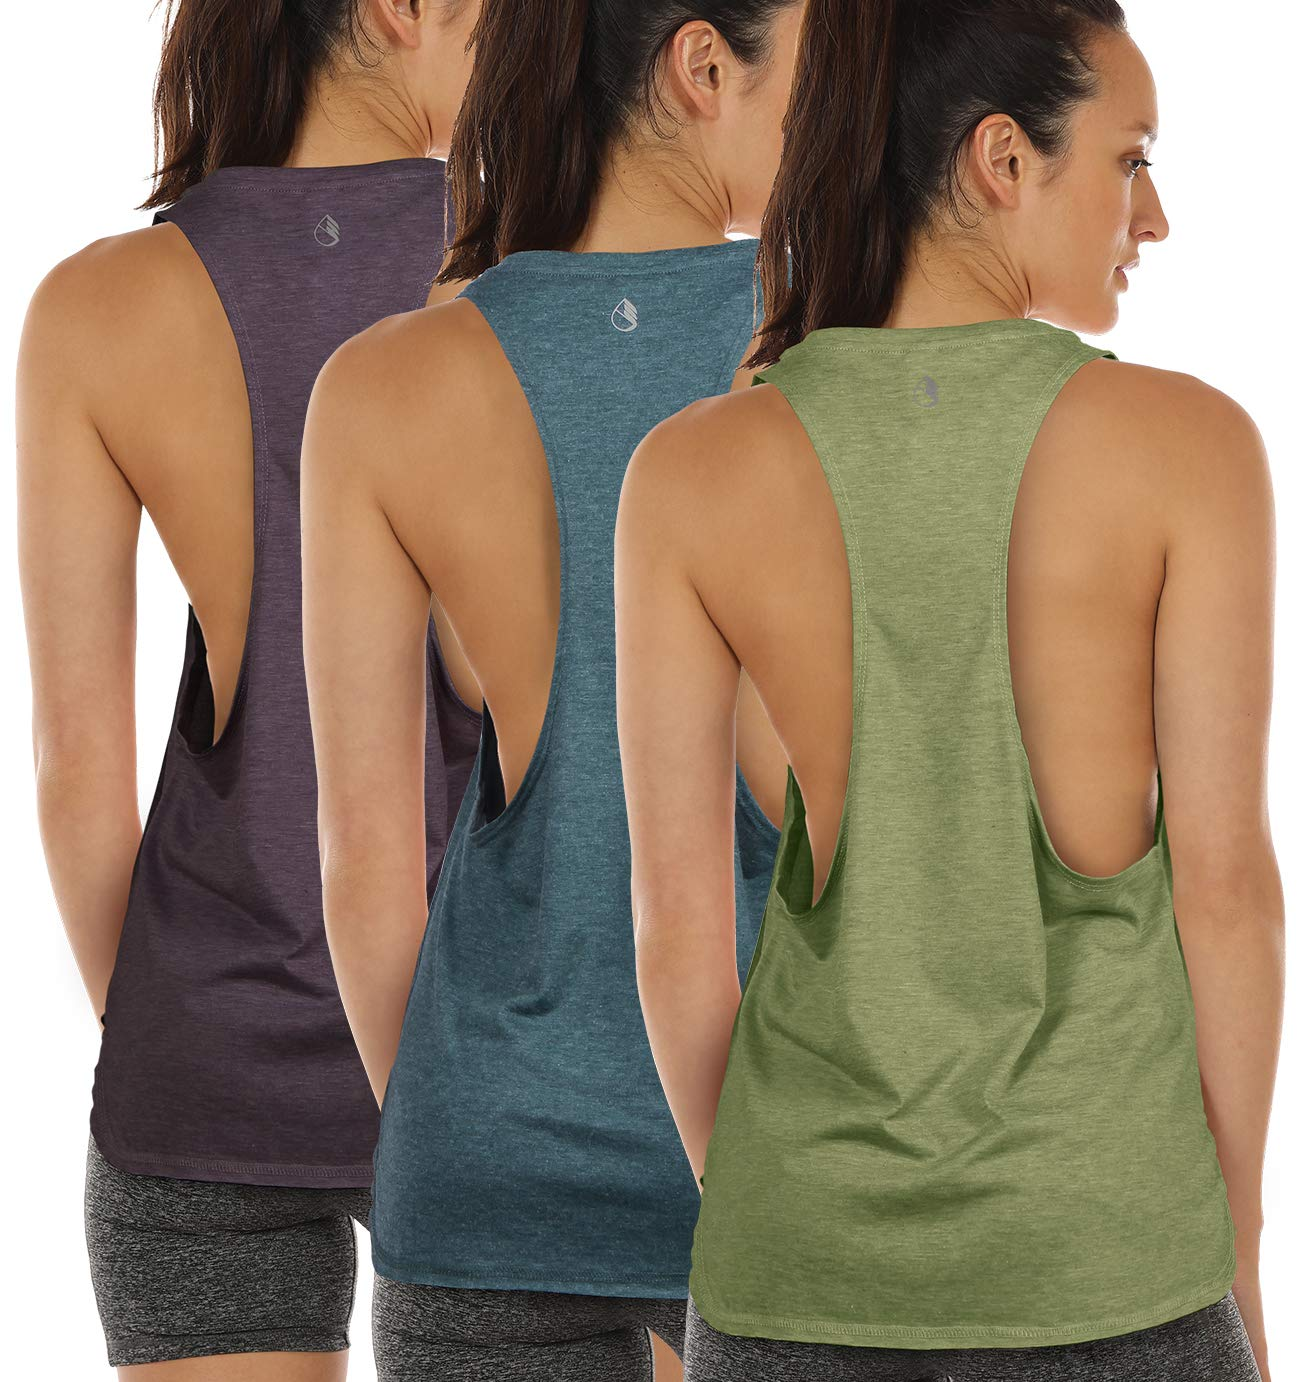 icyzone Workout Tank Tops for Women - Running Muscle Tank Sport Exercise Gym Yoga Tops Running Muscle Tanks(Pack of 3) (XS, Sweet Pea/Lake Blue/Plum Purple)